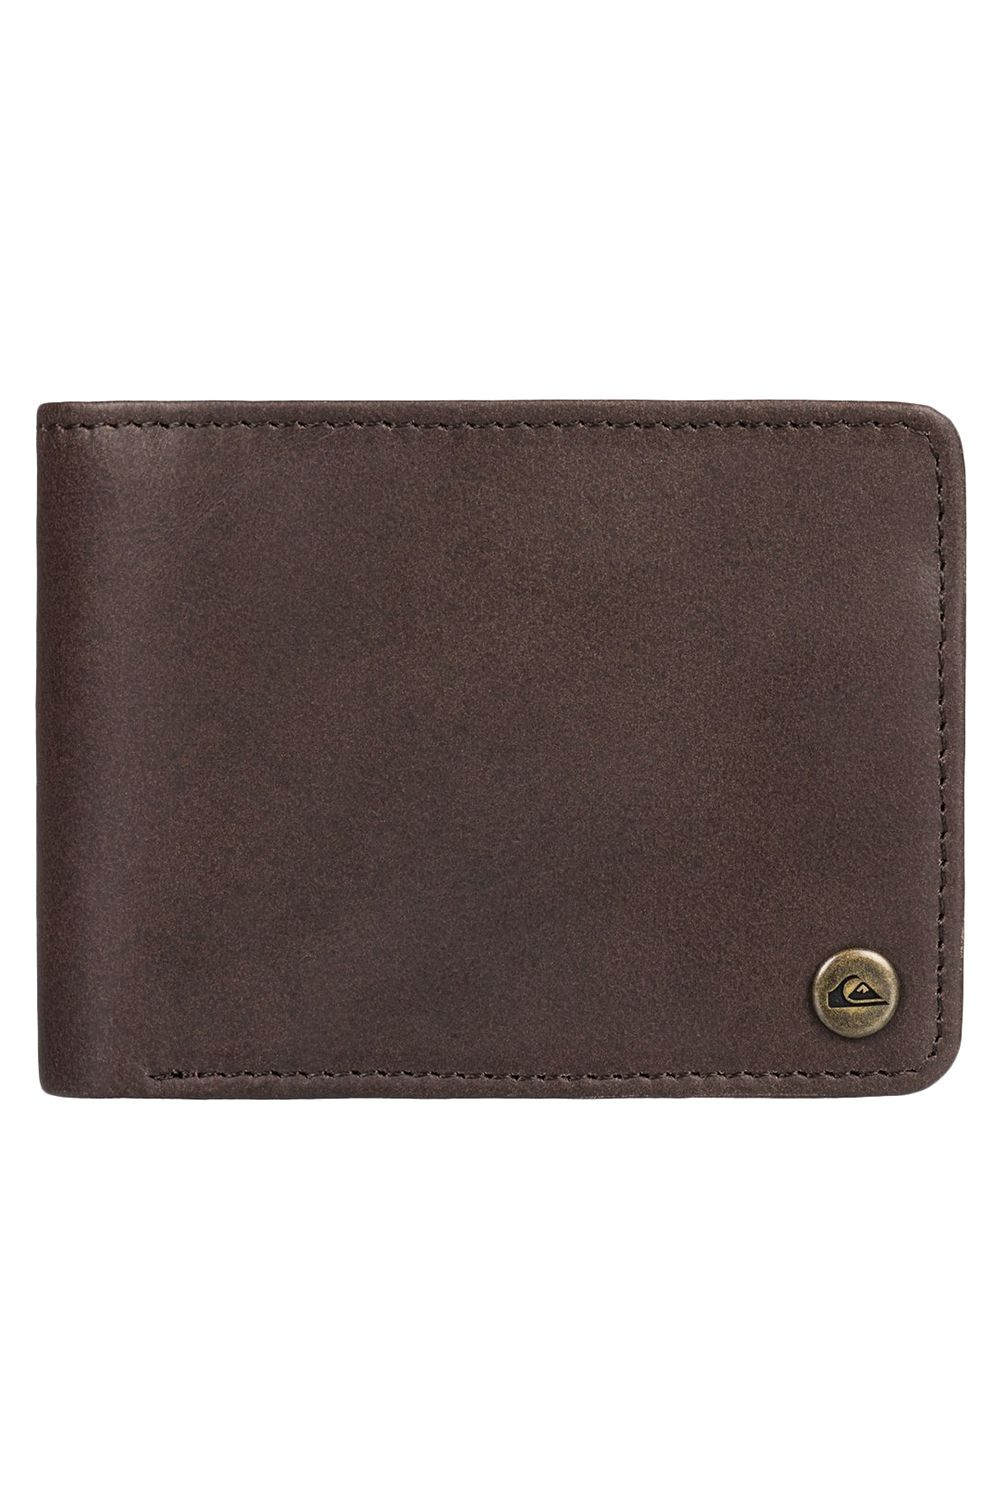 Quiksilver Leather Wallet MACK 2 M WLLT Chocolate Brown